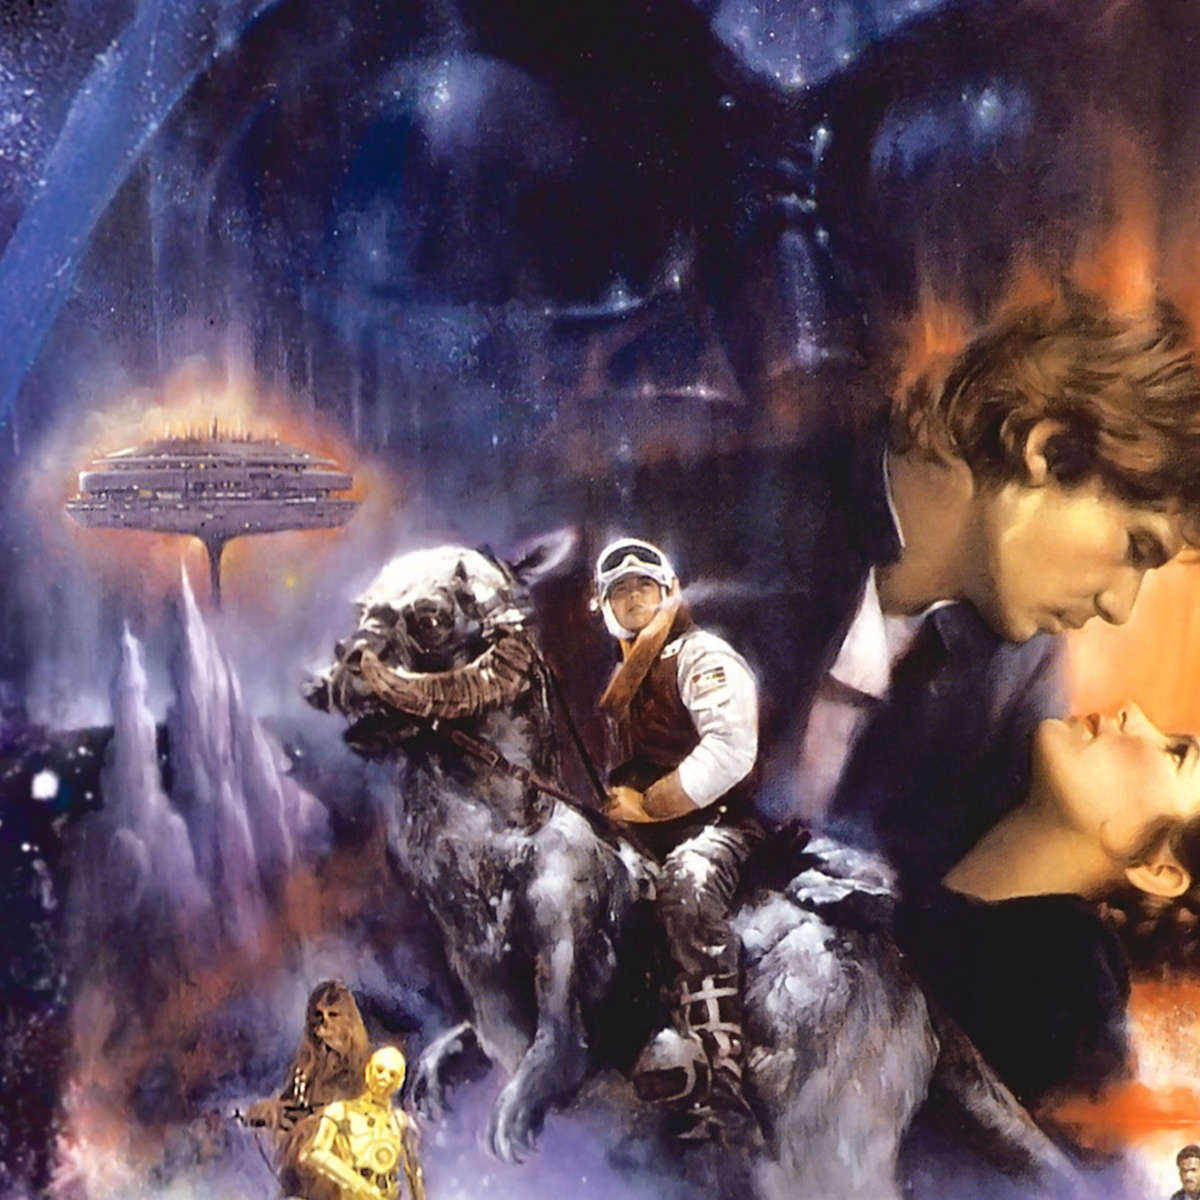 2013-08-22-empire_strikes_back.jpg